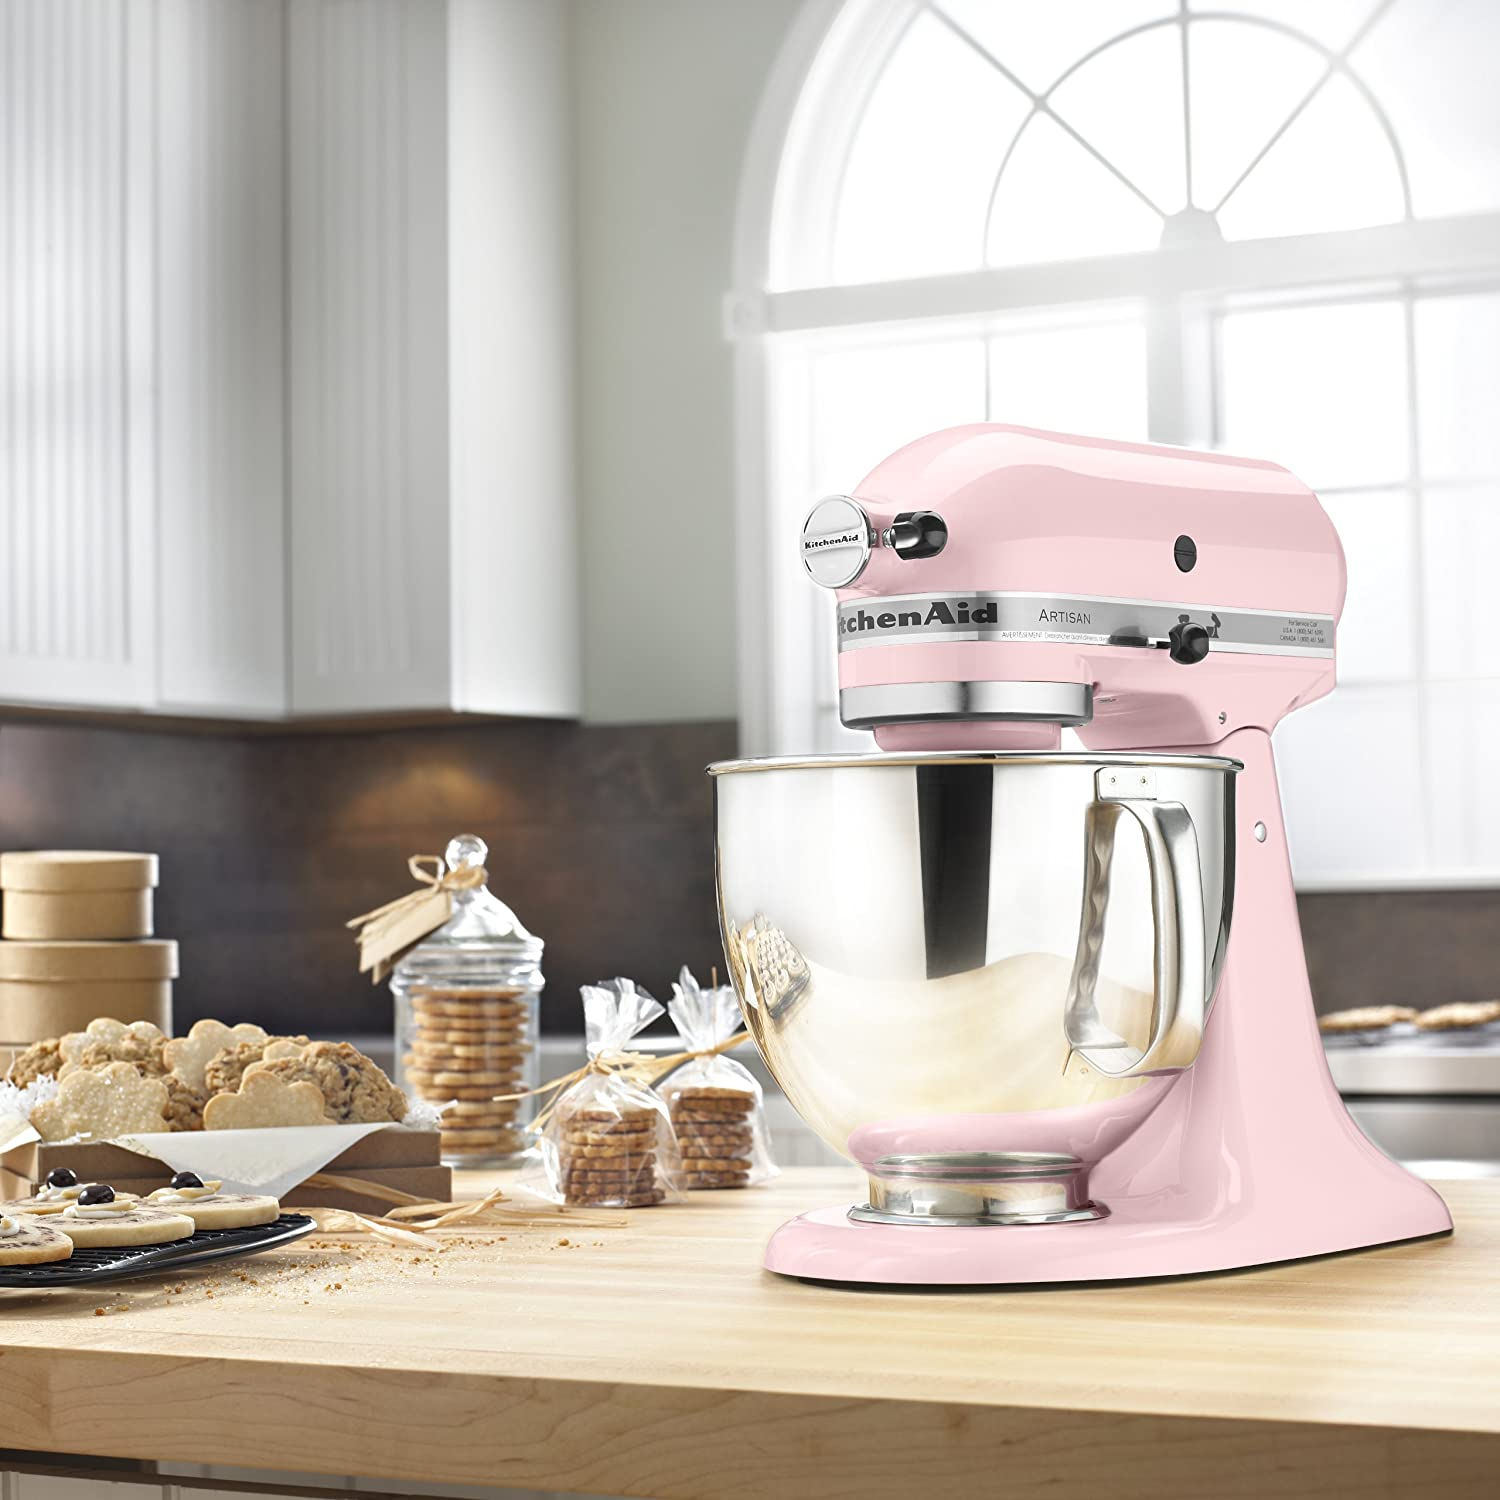 Kitchenaid mixer pink price - Amazon Com Kitchenaid Ksm150pspk Artisan Series 5 Qt Stand Mixer With Pouring Shield Pink Kitchen Dining